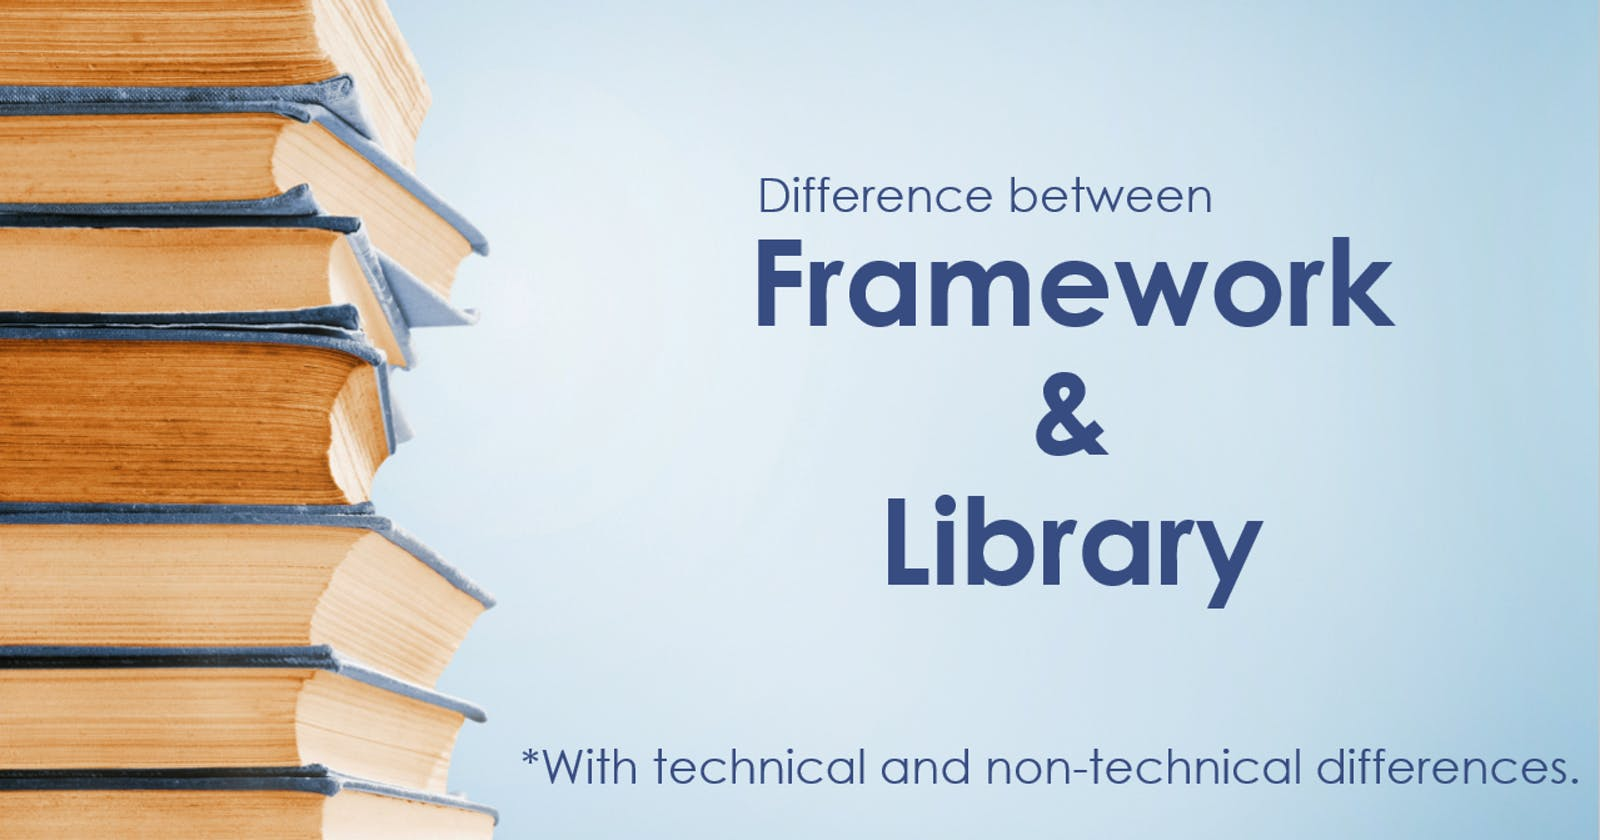 Difference between a Framework and Library